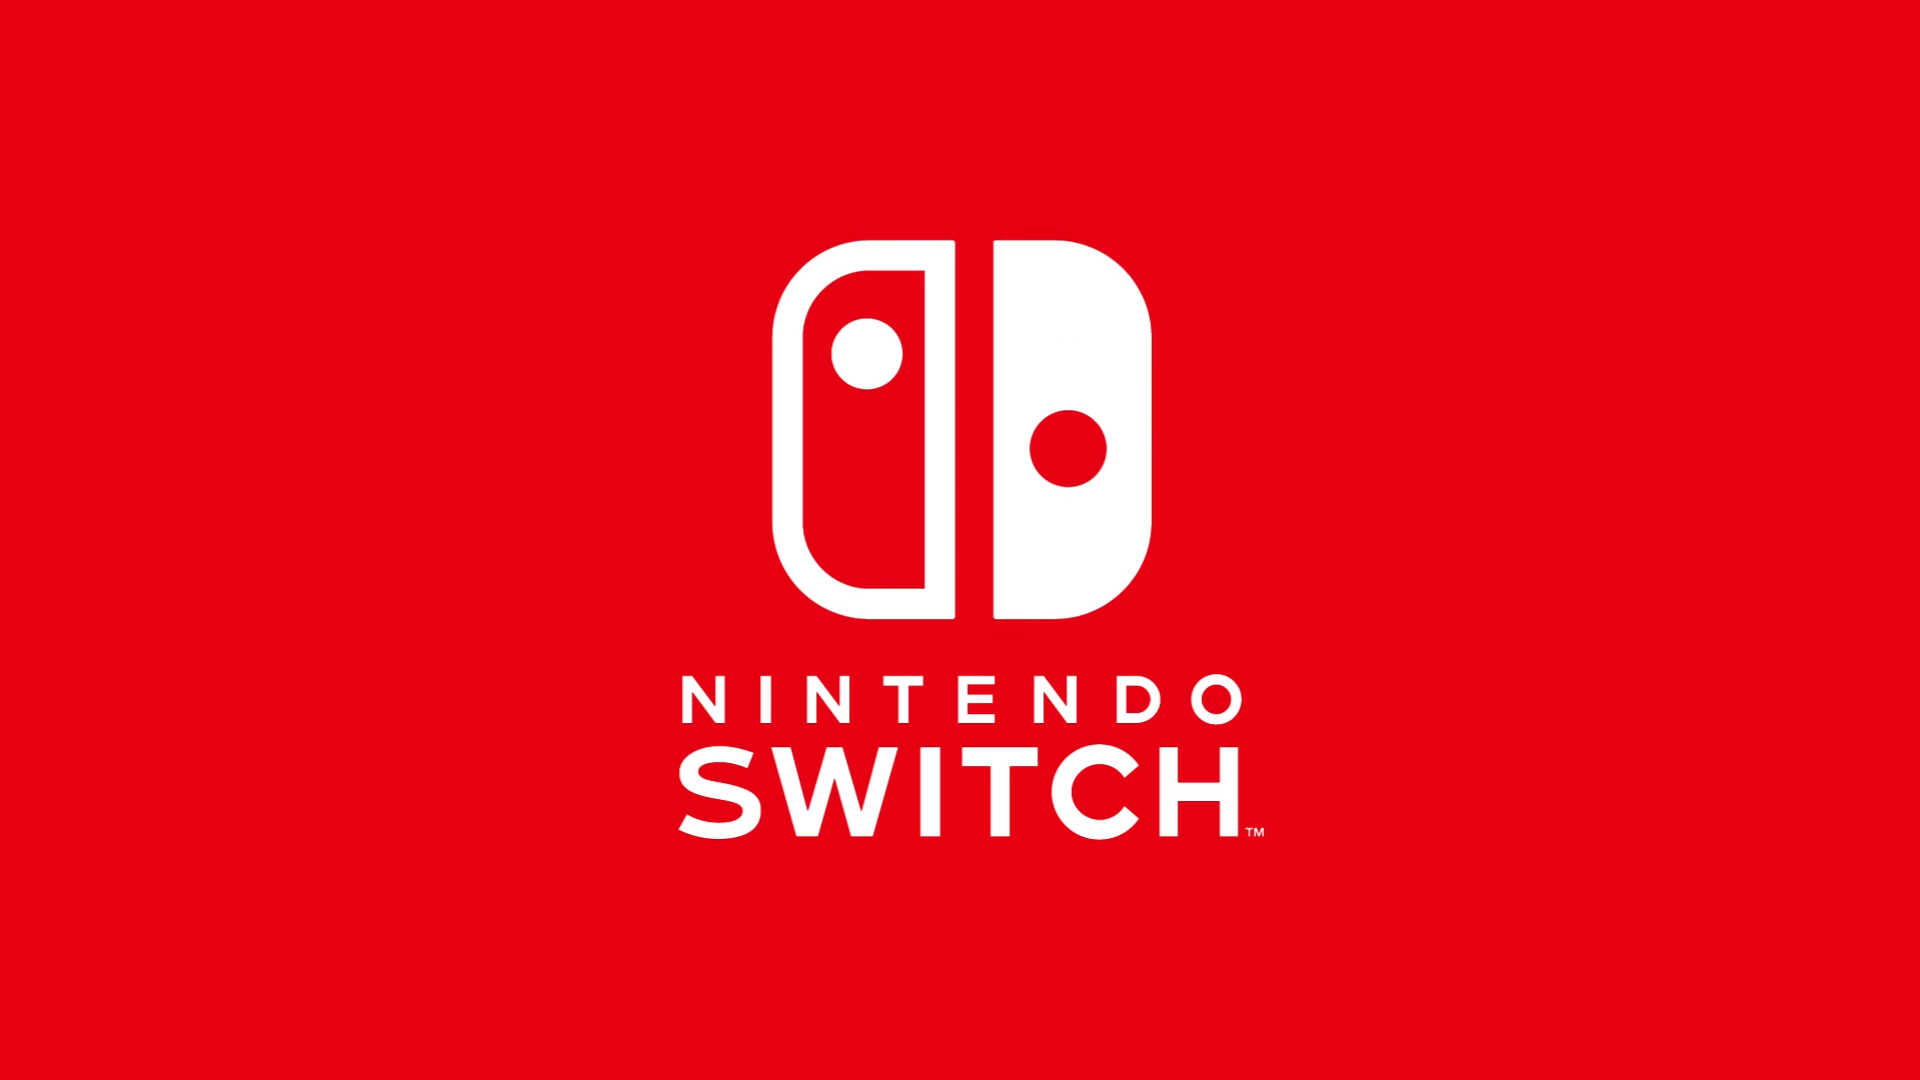 Welcome The Nintendo Switch to The Nintendo Family